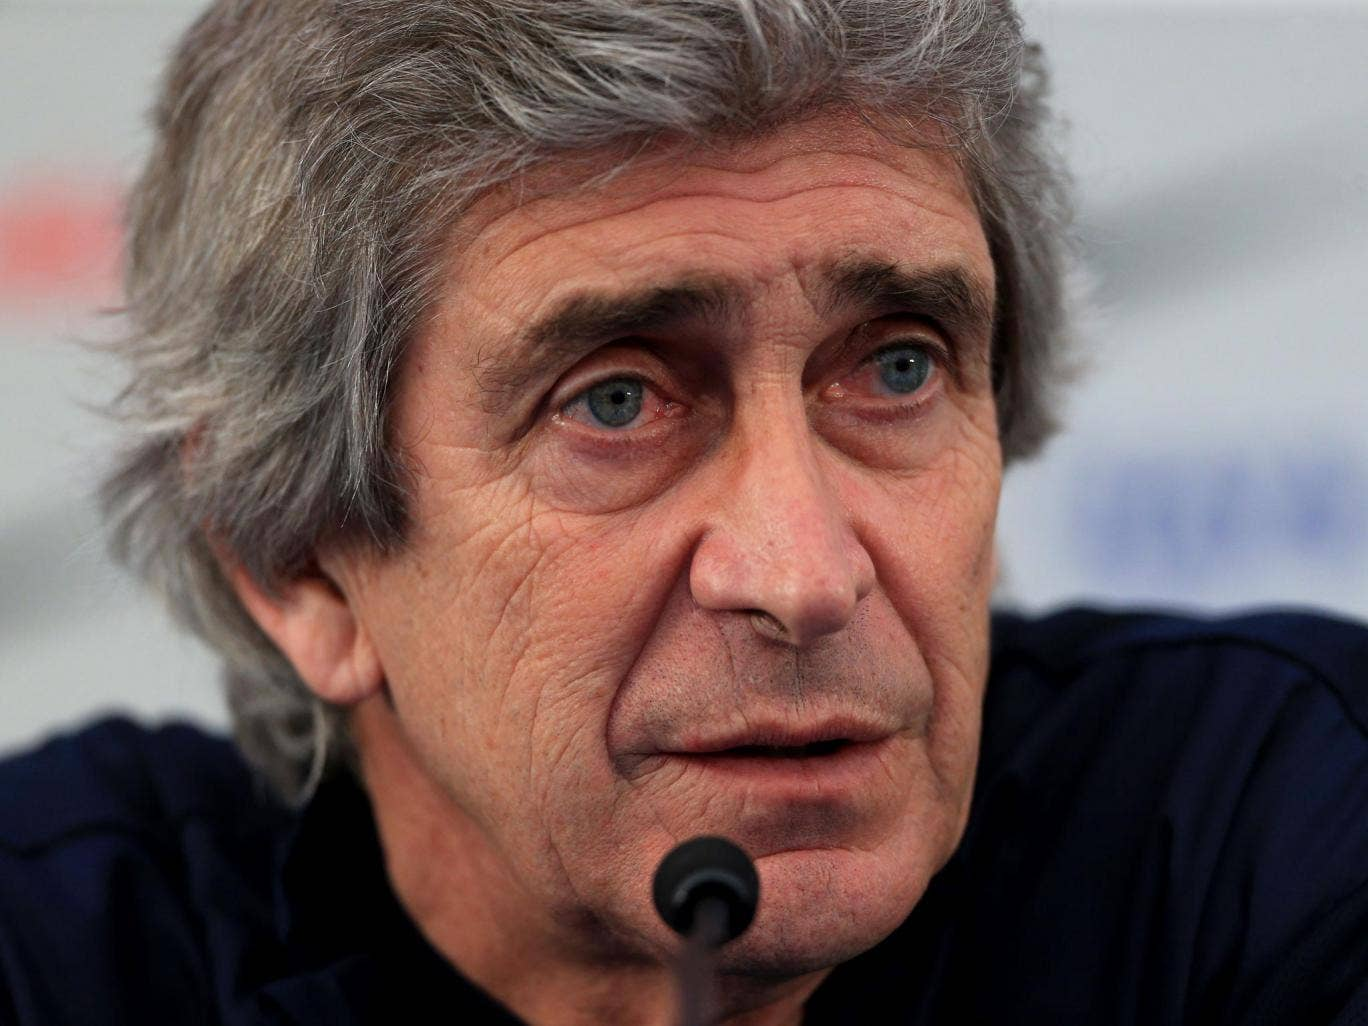 Manchester City Manager Manuel Pellegrini has been handed a two-match touchline ban by Uefa